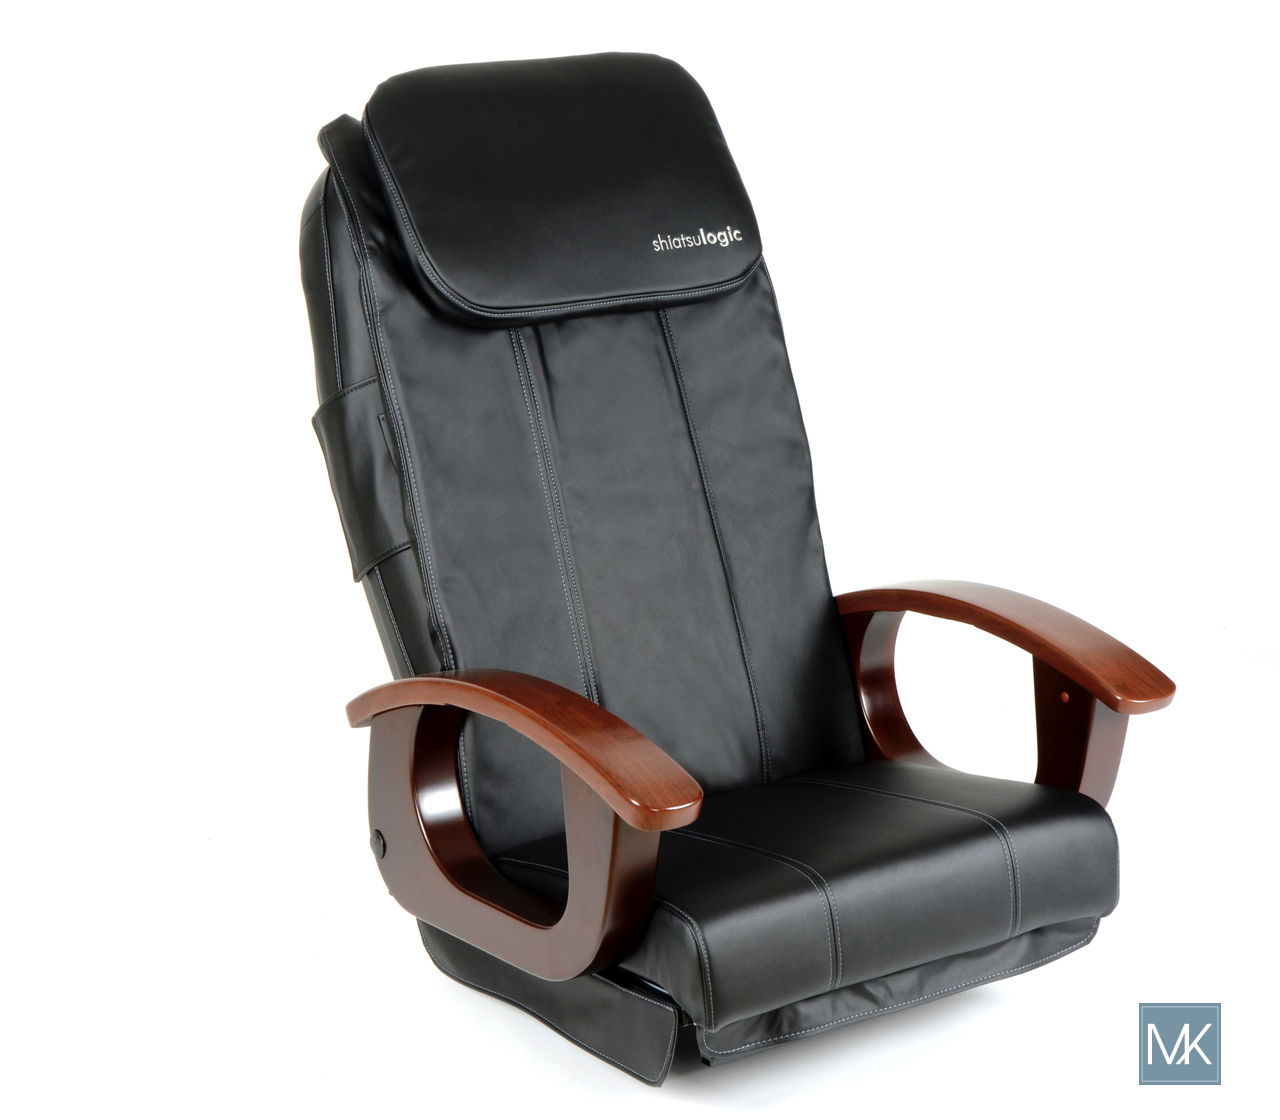 Massage Chair Cover Shiatsulogic Pedicure Chair Cushion Cover Black Massage Vibration Seat Back Pillow Cushion Upholstery